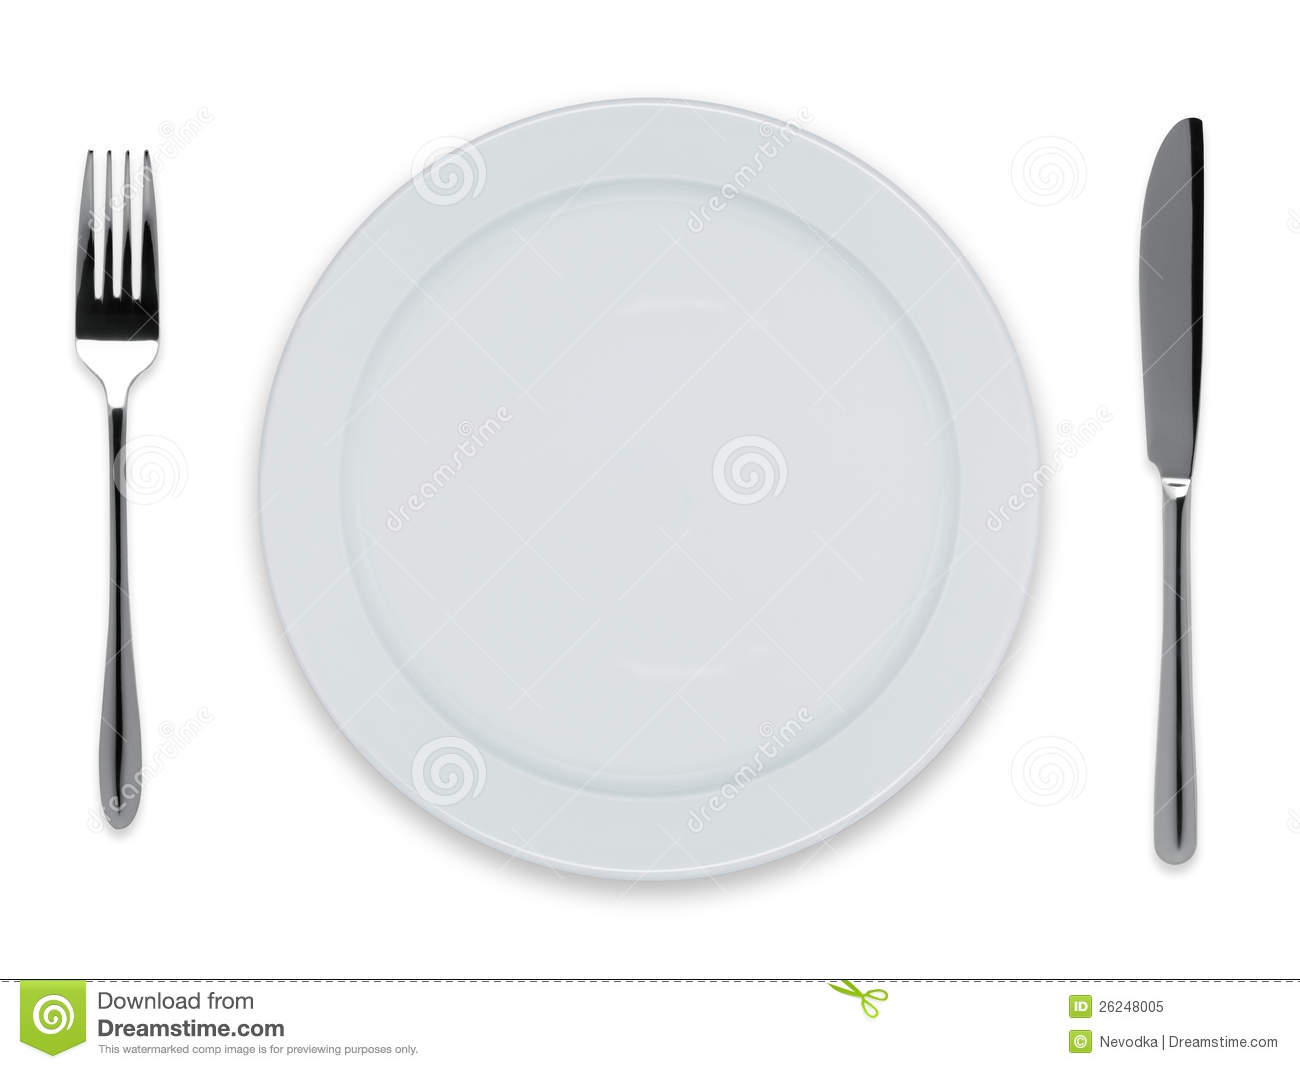 Empty dinner plate  sc 1 st  Dreamstime.com & Empty dinner plate stock image. Image of steel equipment - 26248005